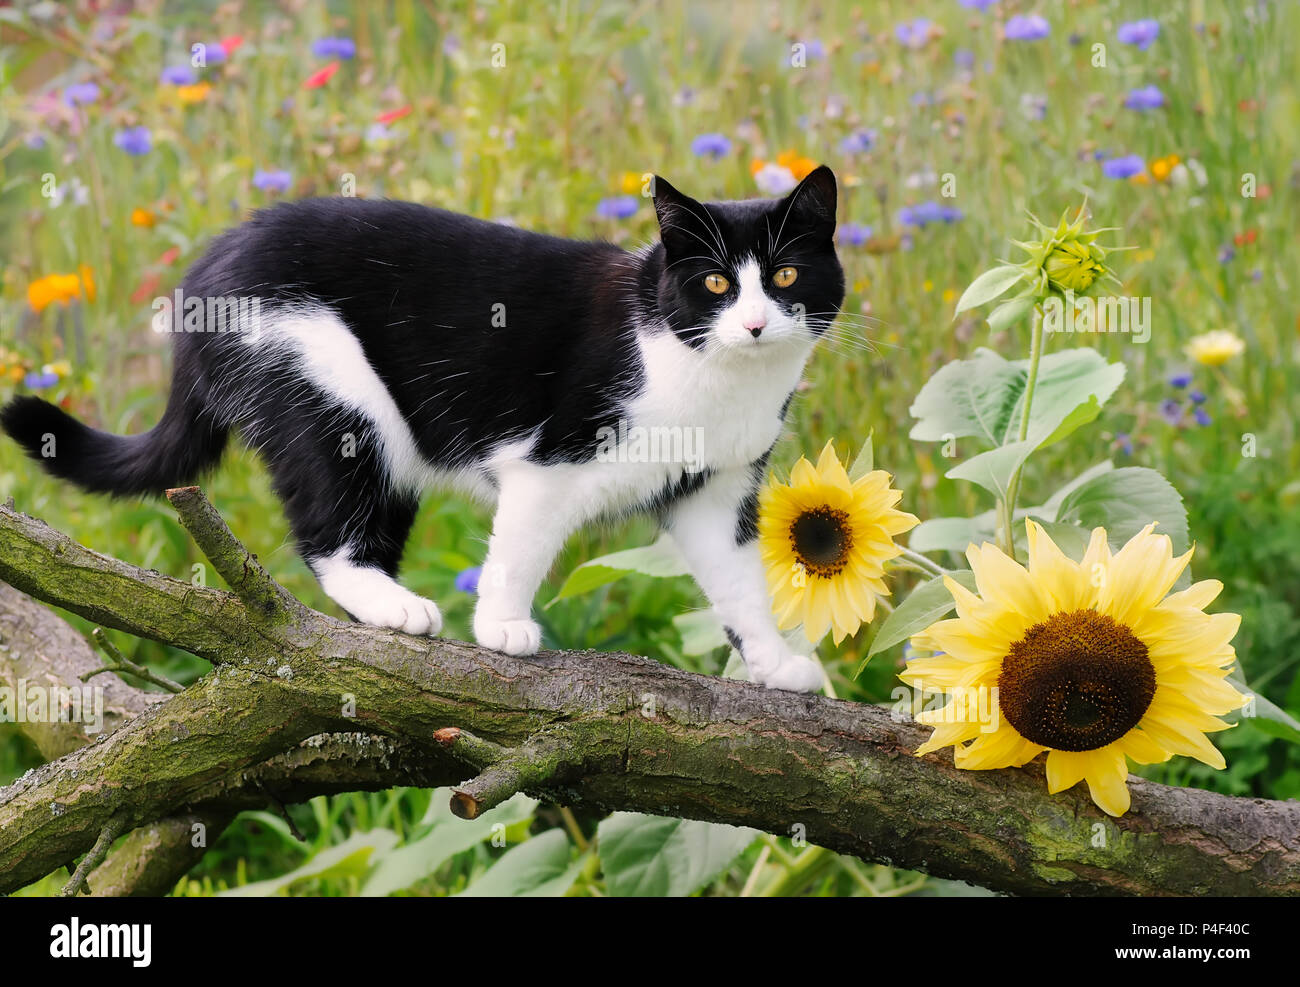 White Cat In The Garden With Yellow Flowers Stock Photos White Cat